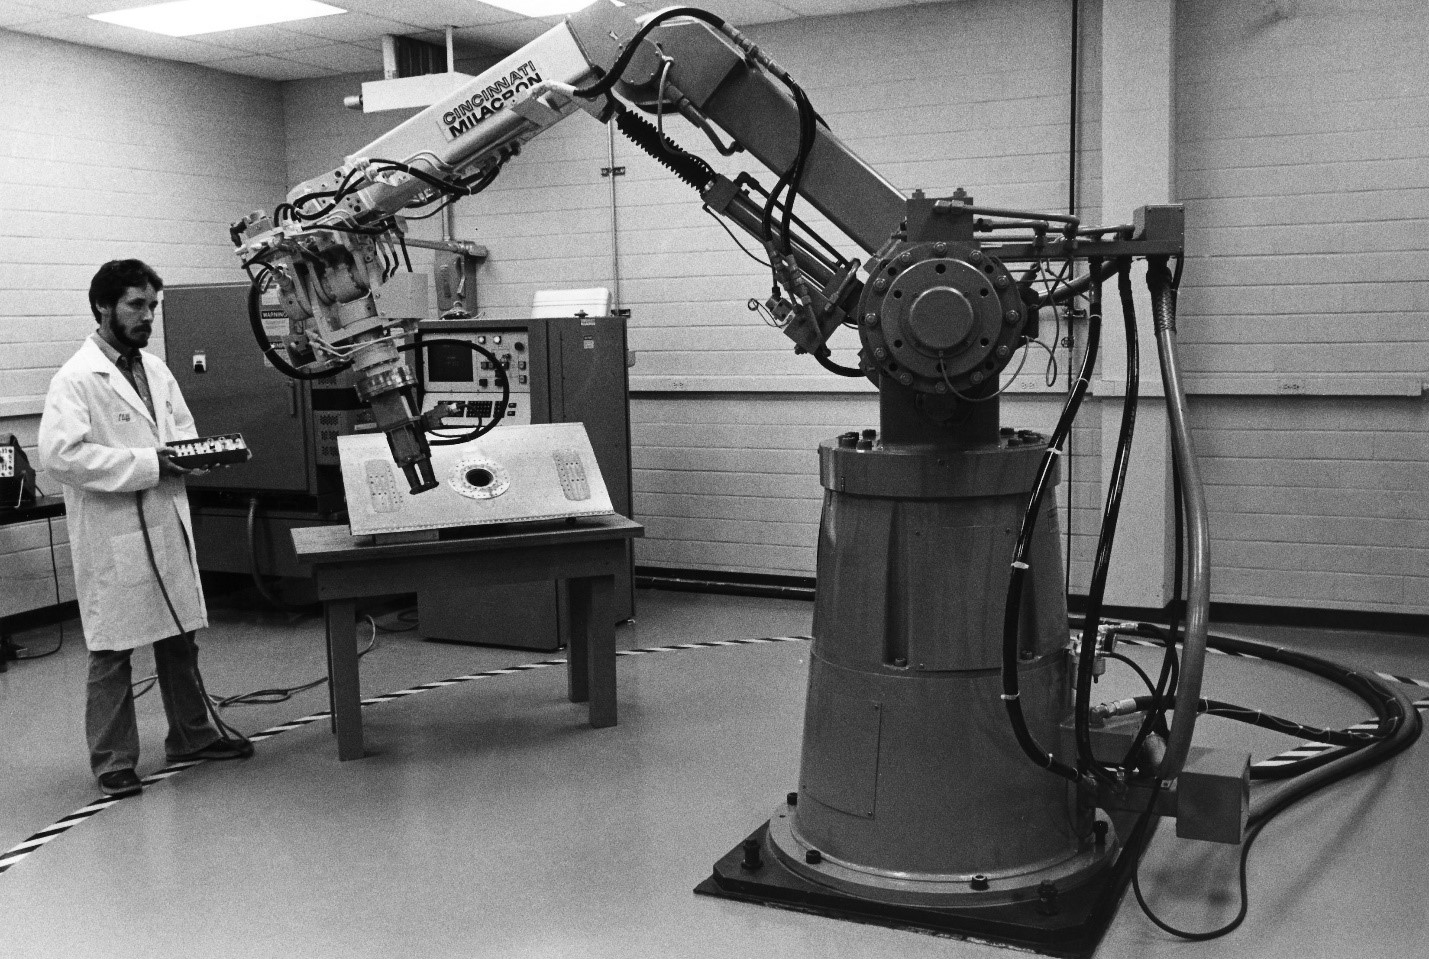 Black & white photo showing a man in a lab coat standing near a large robotic arm